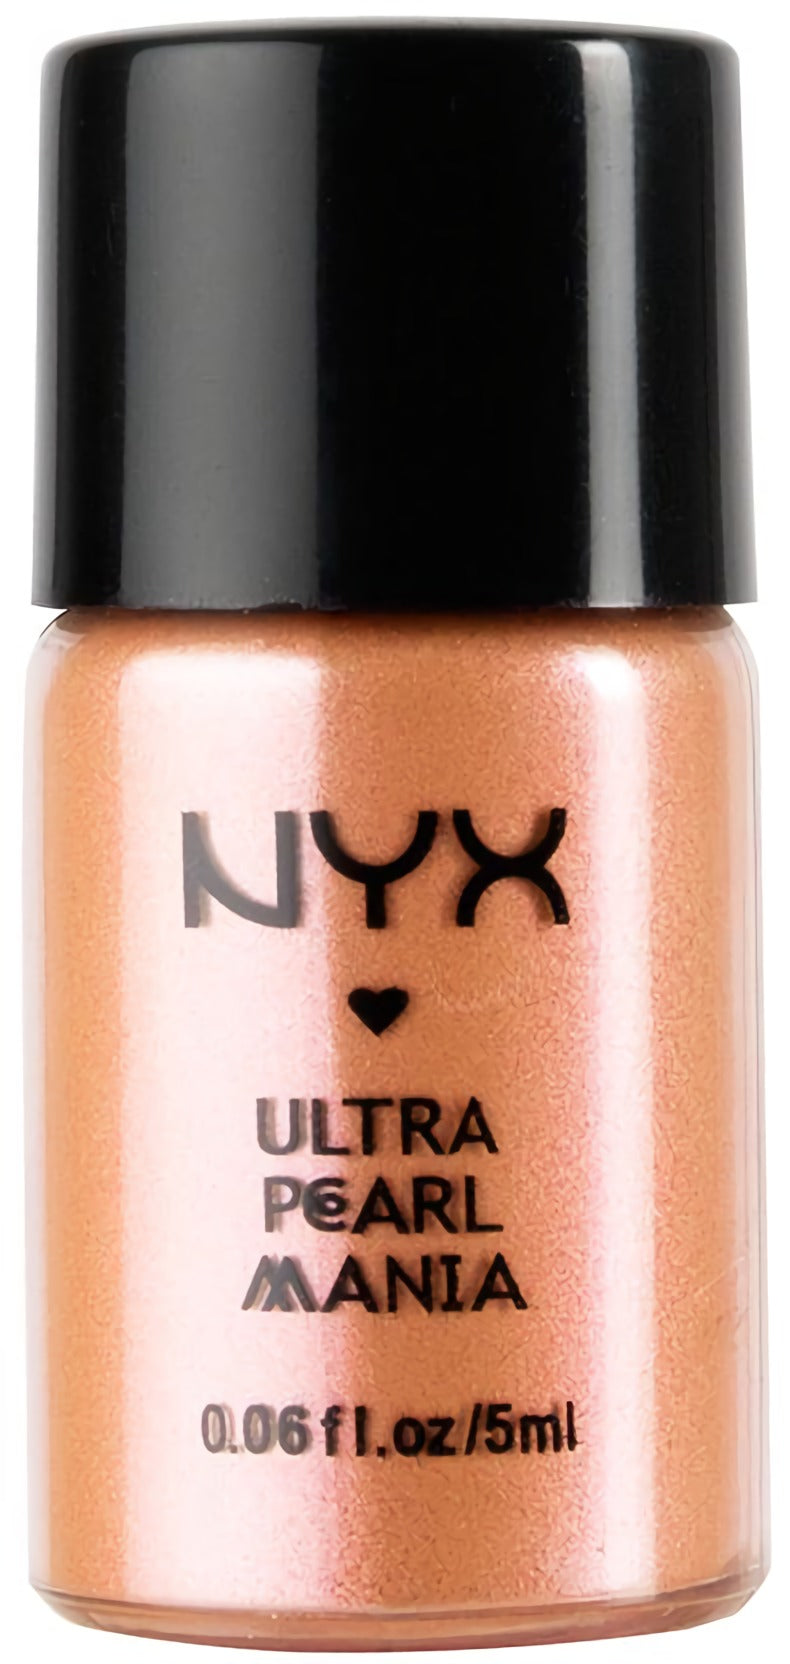 NYX Professional Ultra Pearl Mania Loose Pearl Eyeshadow, Orange Zest Pearl